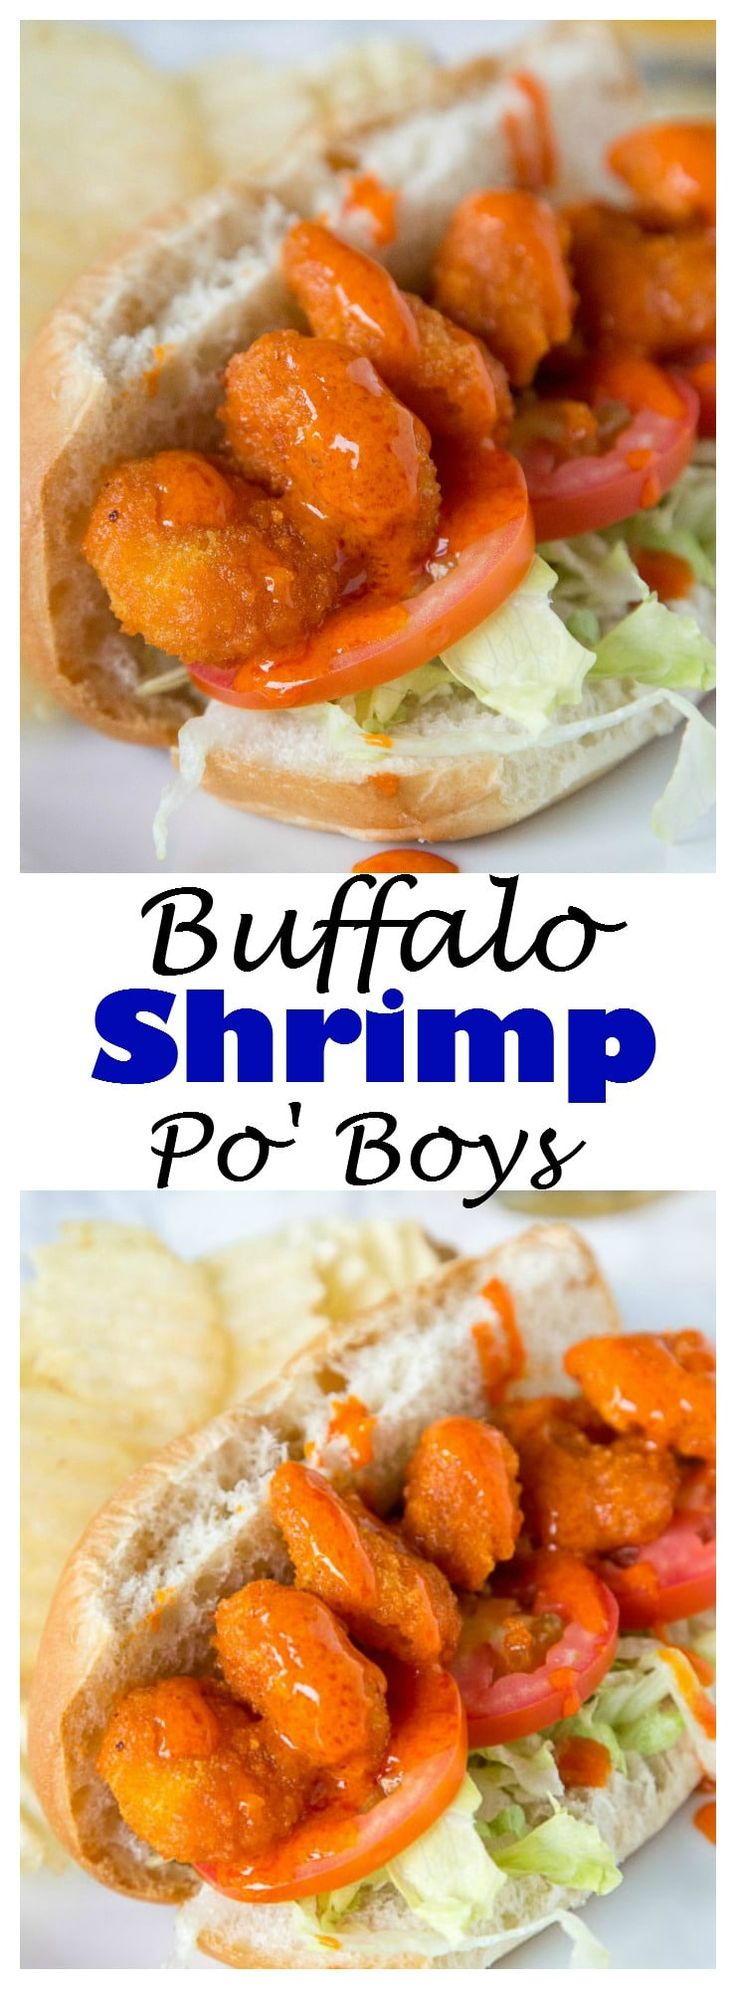 Tip: Cool down your spicy buffalo shrimp Po' Boy with Ranch or blue cheese dressing!   …  Trust Gorton's to provide you and your family with delicious seafood. Fish you can make quickly and incorporate into easy recipes. Fish to keep you healthy. Go Fish. Go Gorton's.